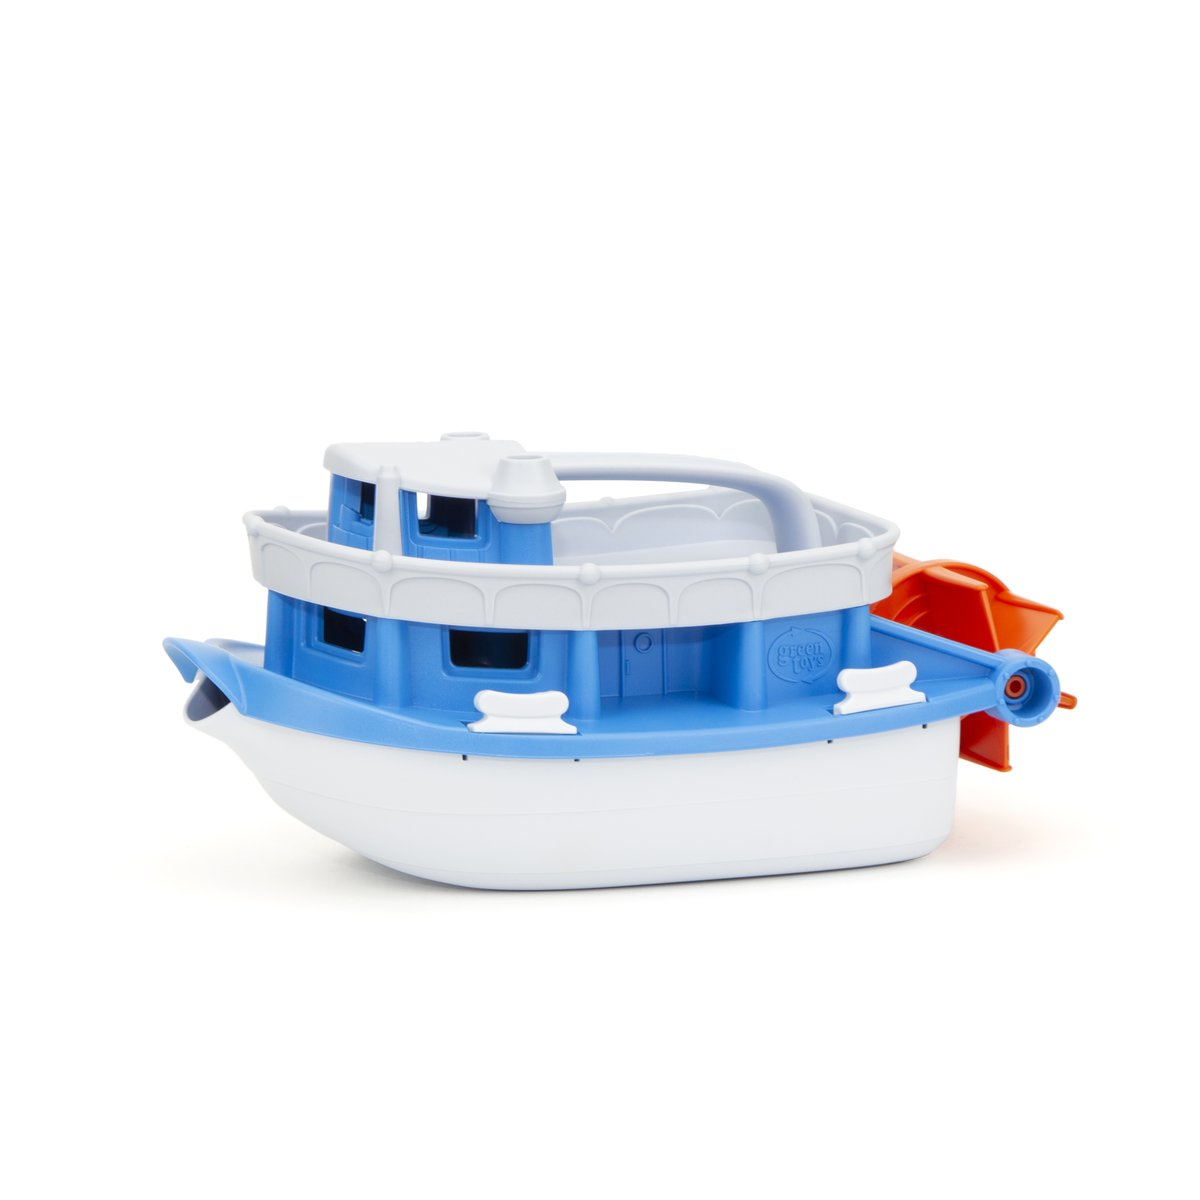 Green Toys Floating Boats $15